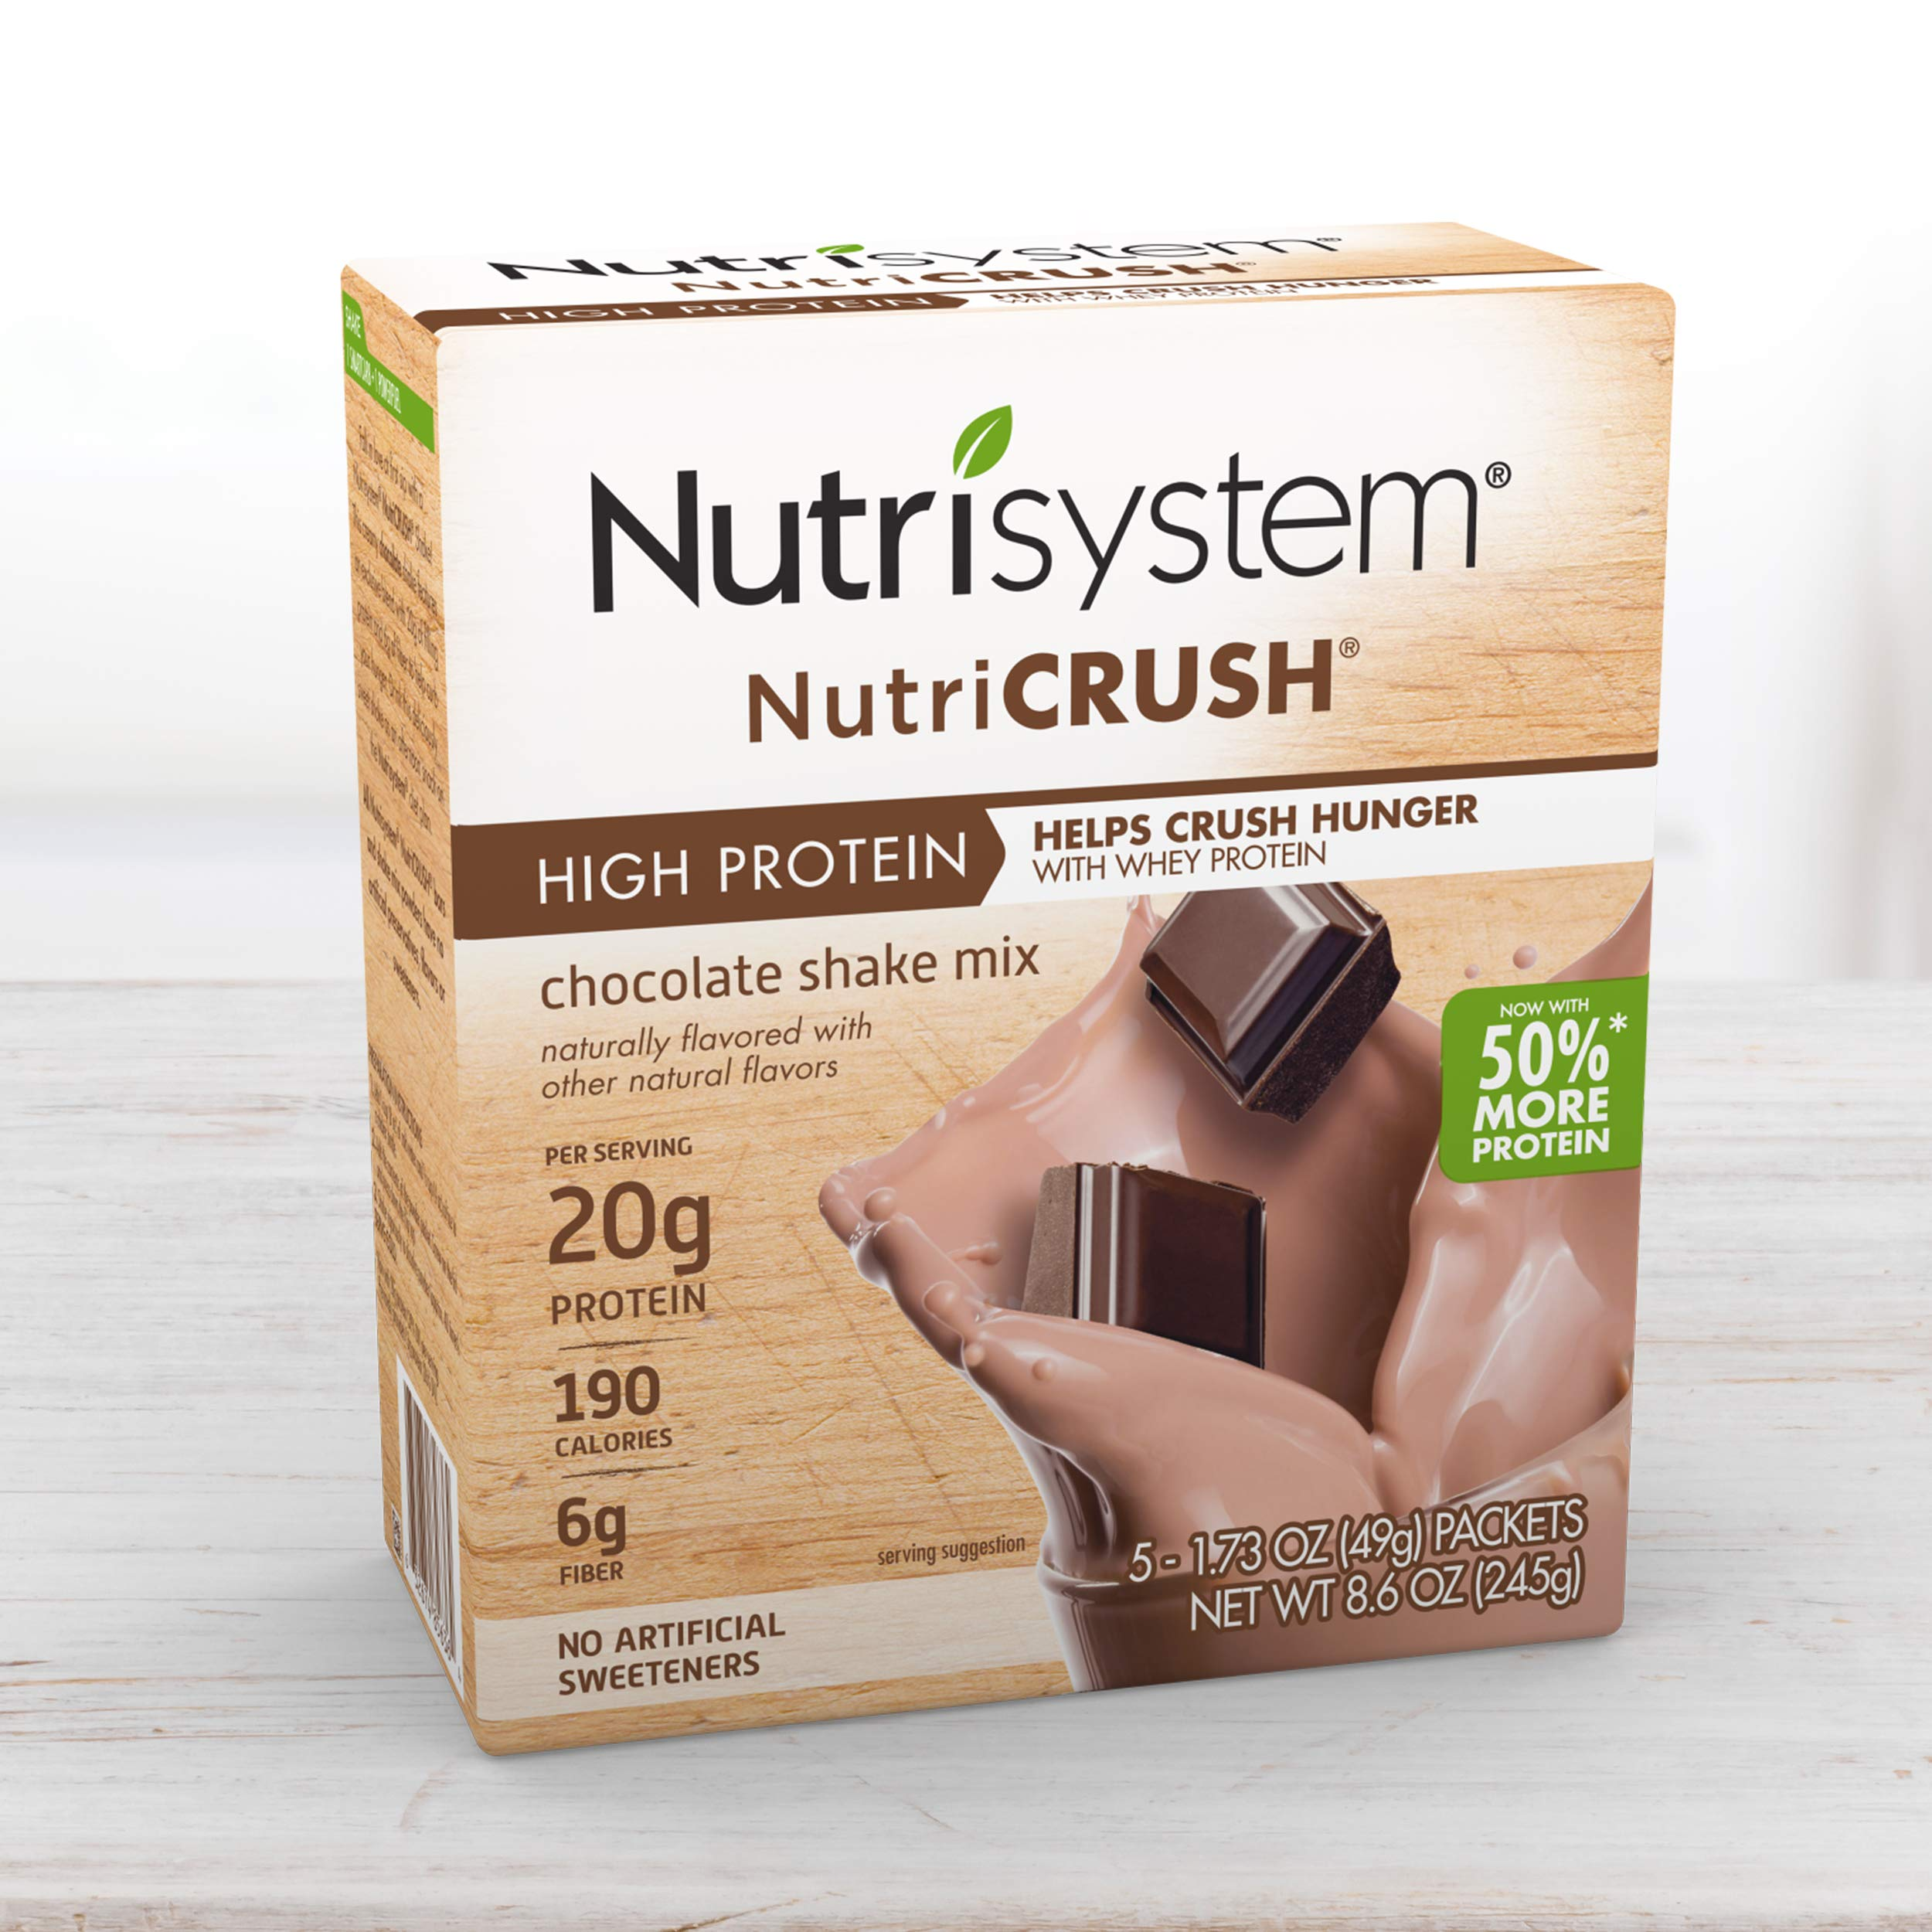 Nutrisystem® NutriCRUSH® Shake Mix - Chocolate, 20g Protein (20 ct Case) - On The Go Protein Shakes to Support Healthy Weight Loss by Nutrisystem